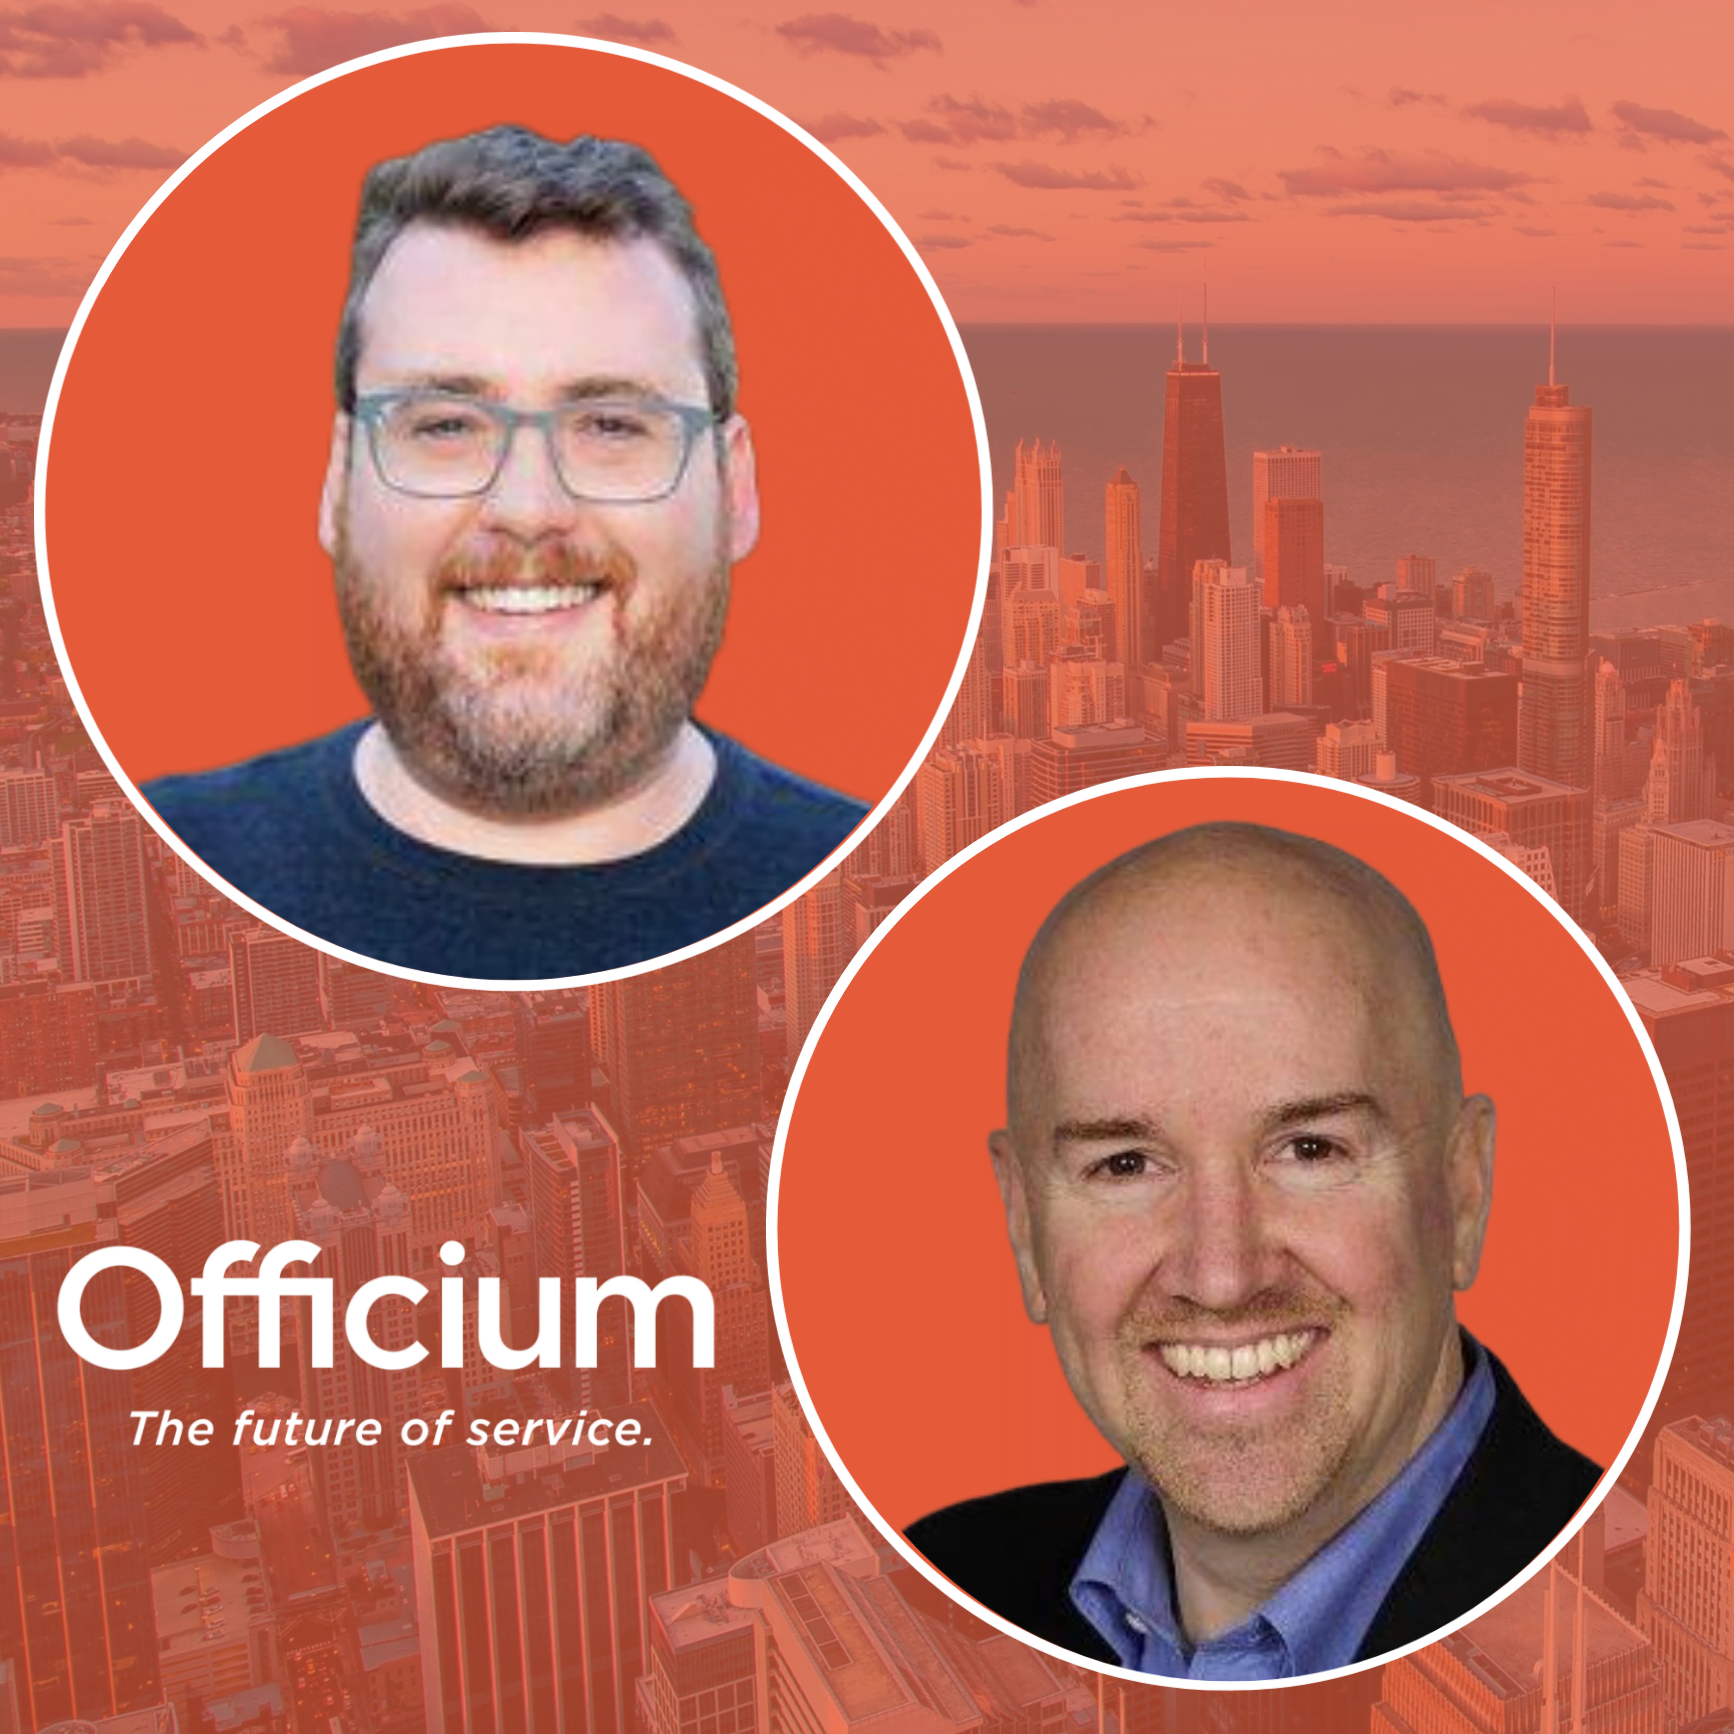 CX Startup Officium Labs Appoints Two Executives, Hits $9M in Revenue